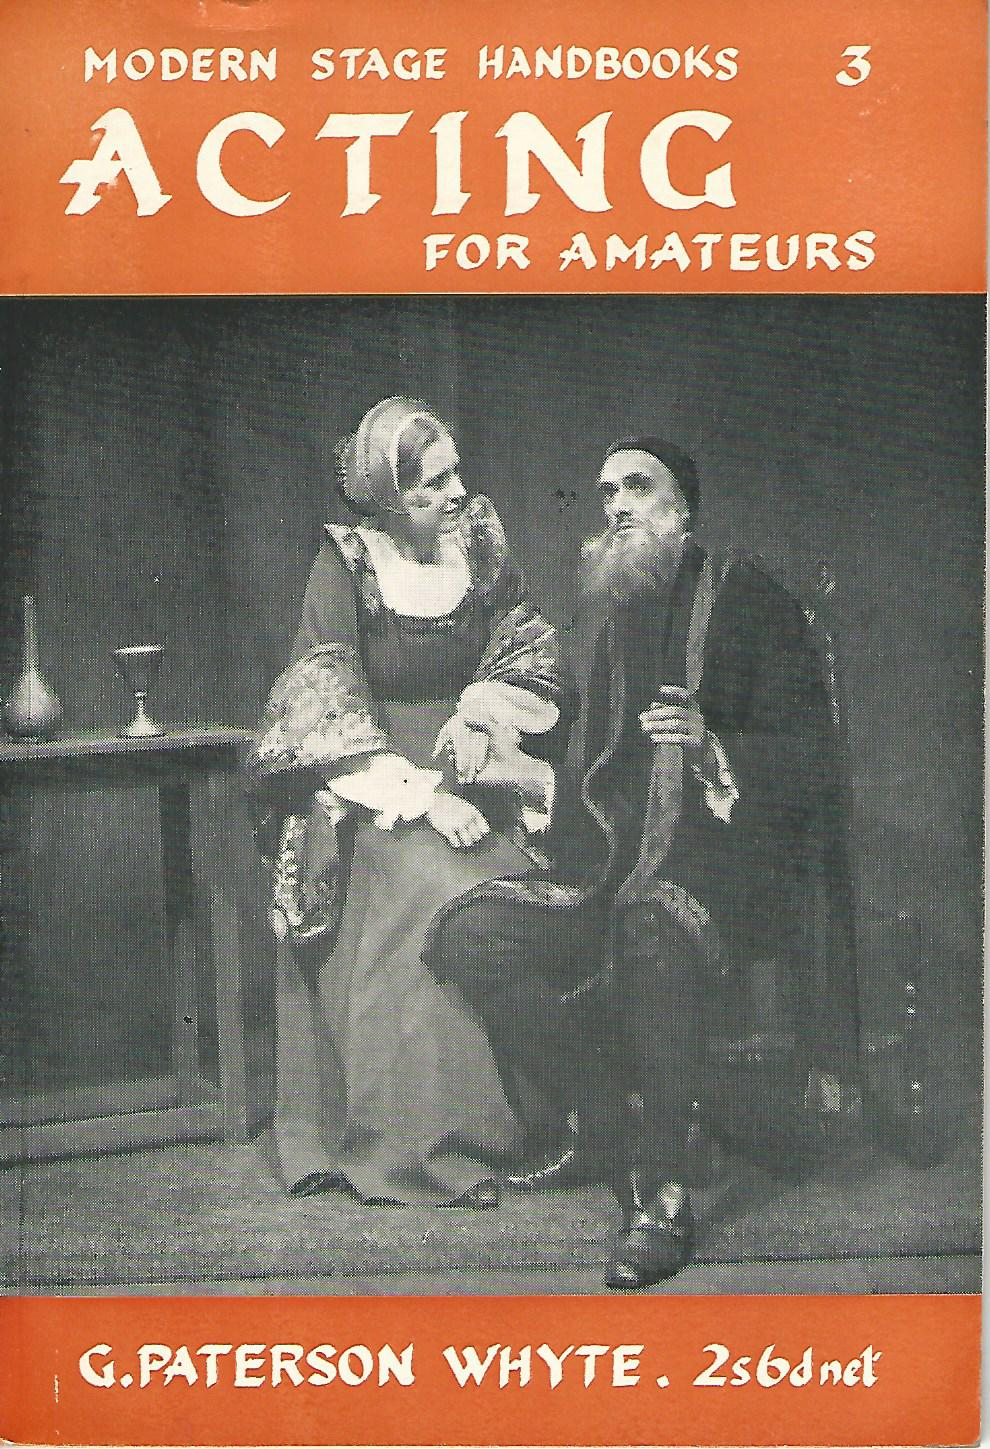 Image for Modern Stage handbooks: Acting for Amateurs. Number 3.